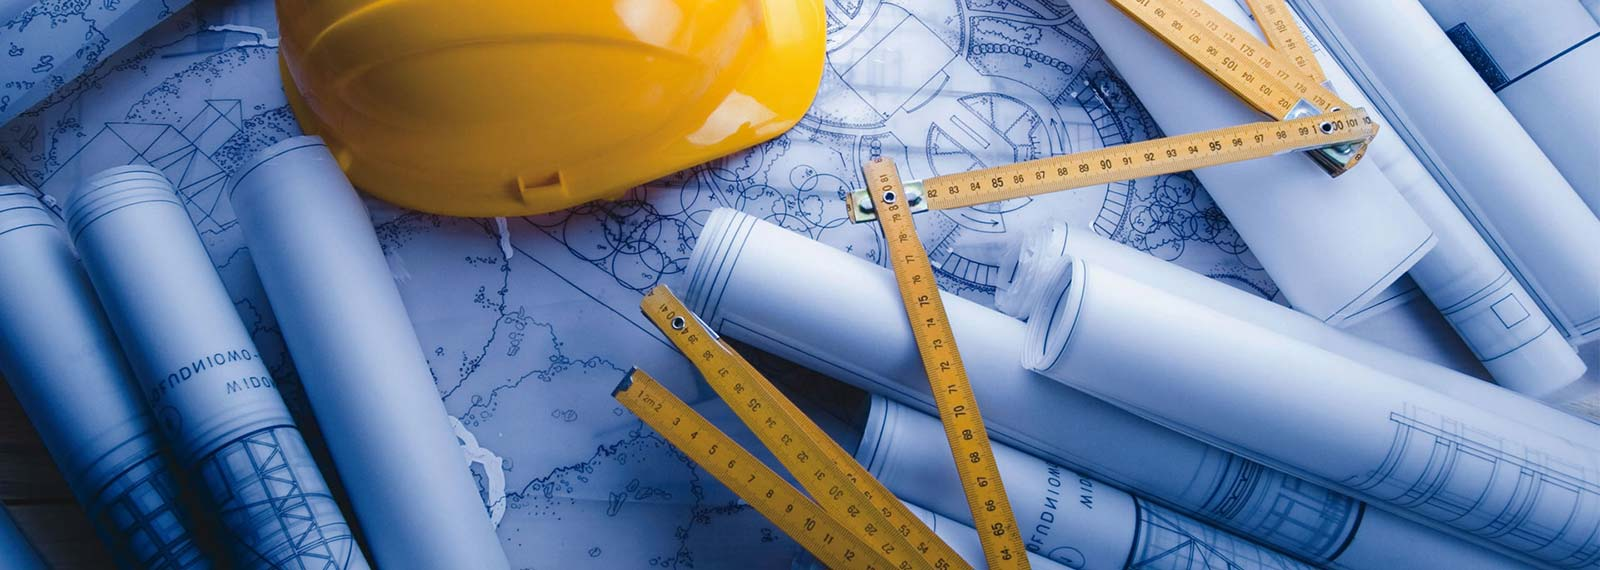 blueprints for underpinning projects